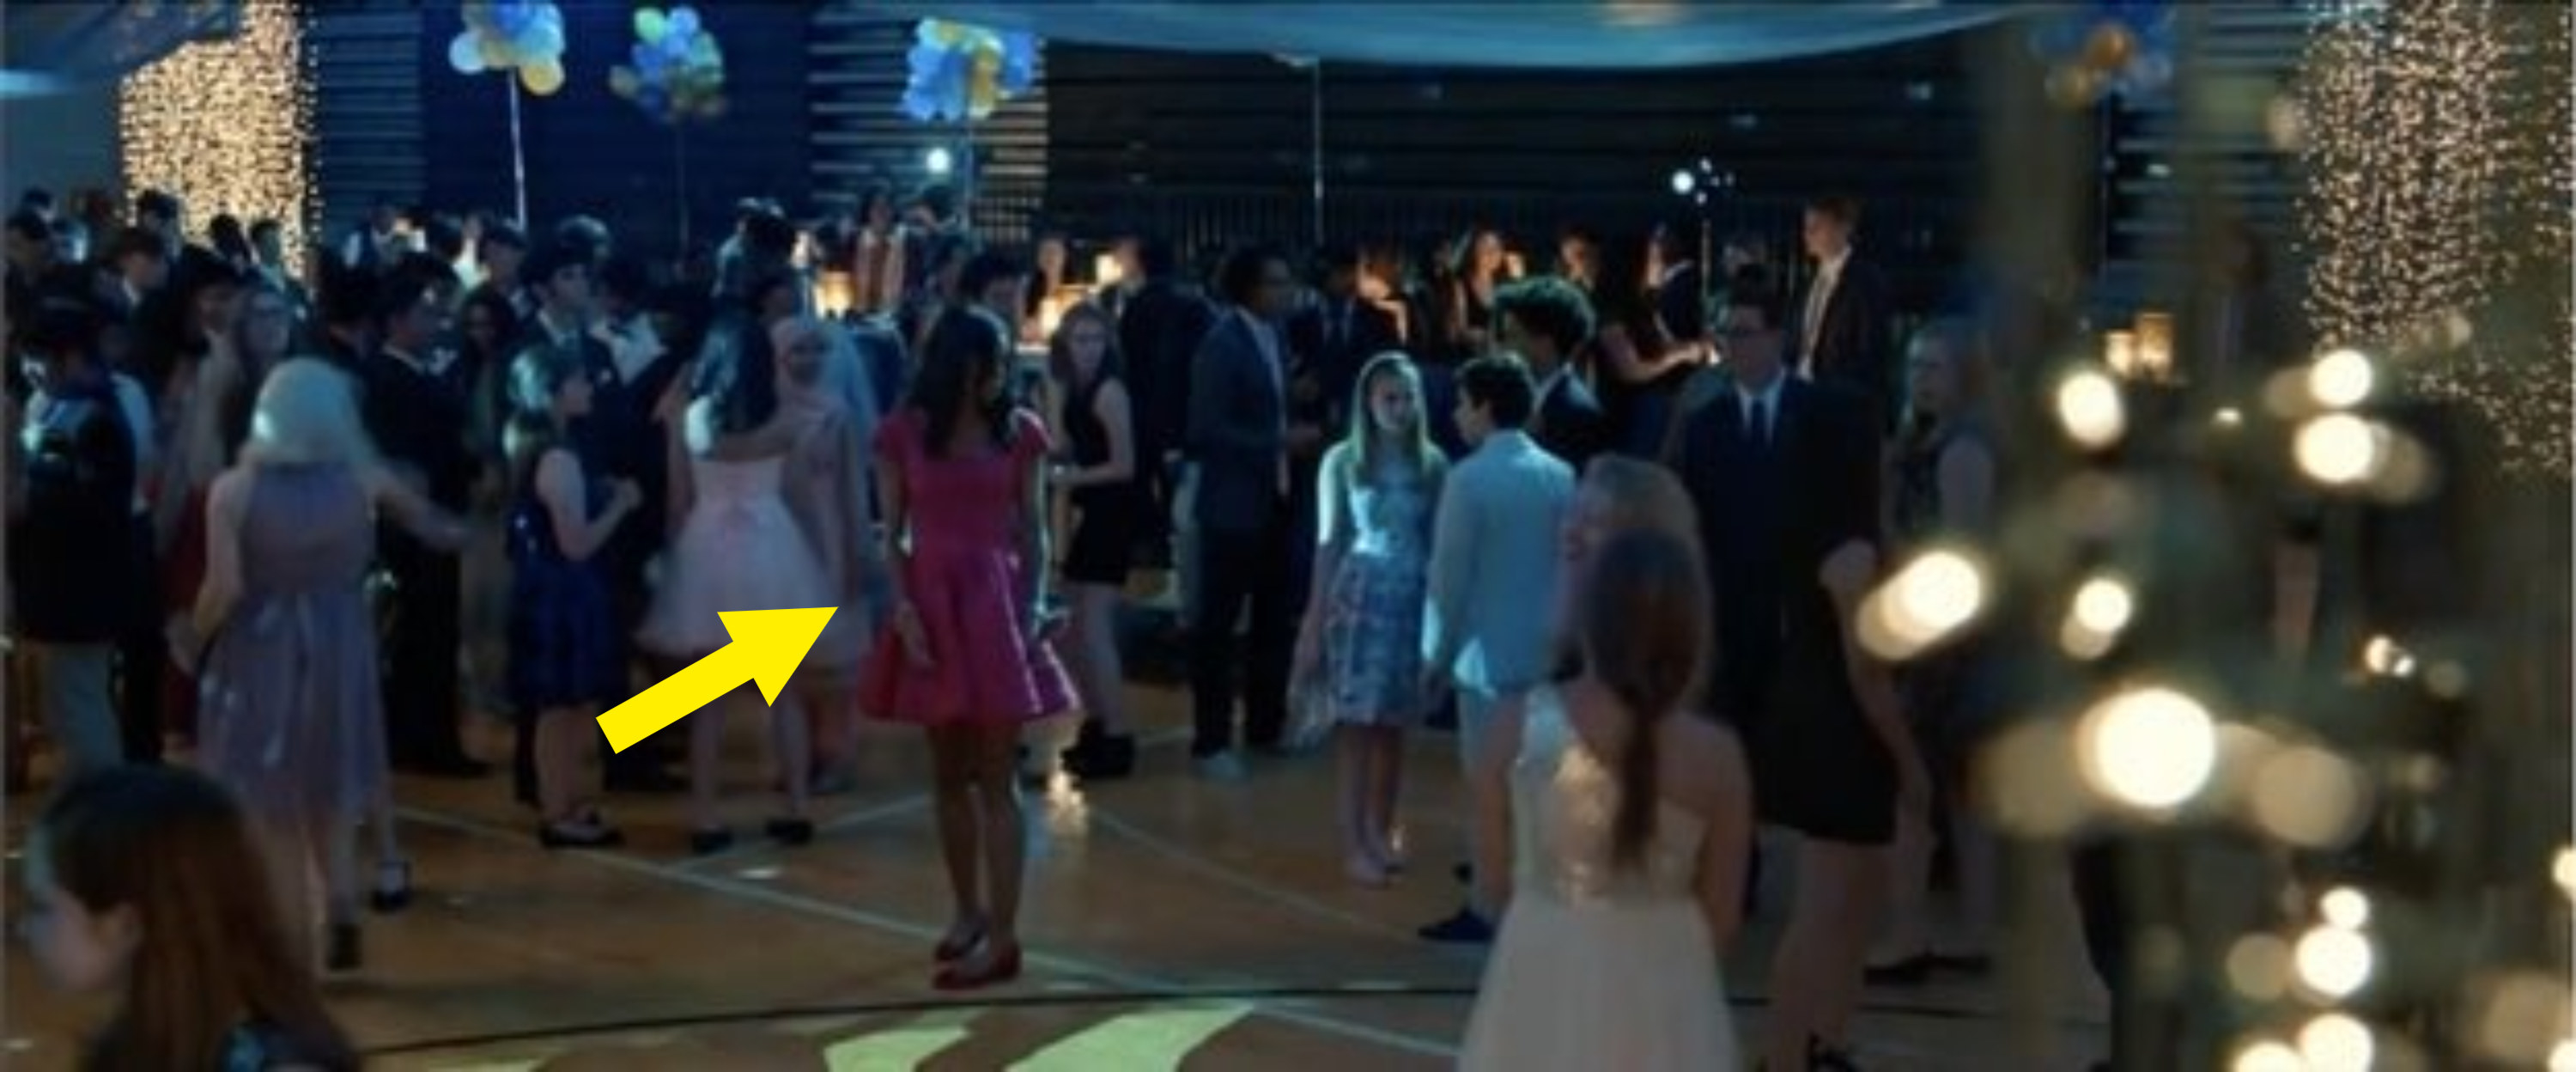 Liz left alone at the prom